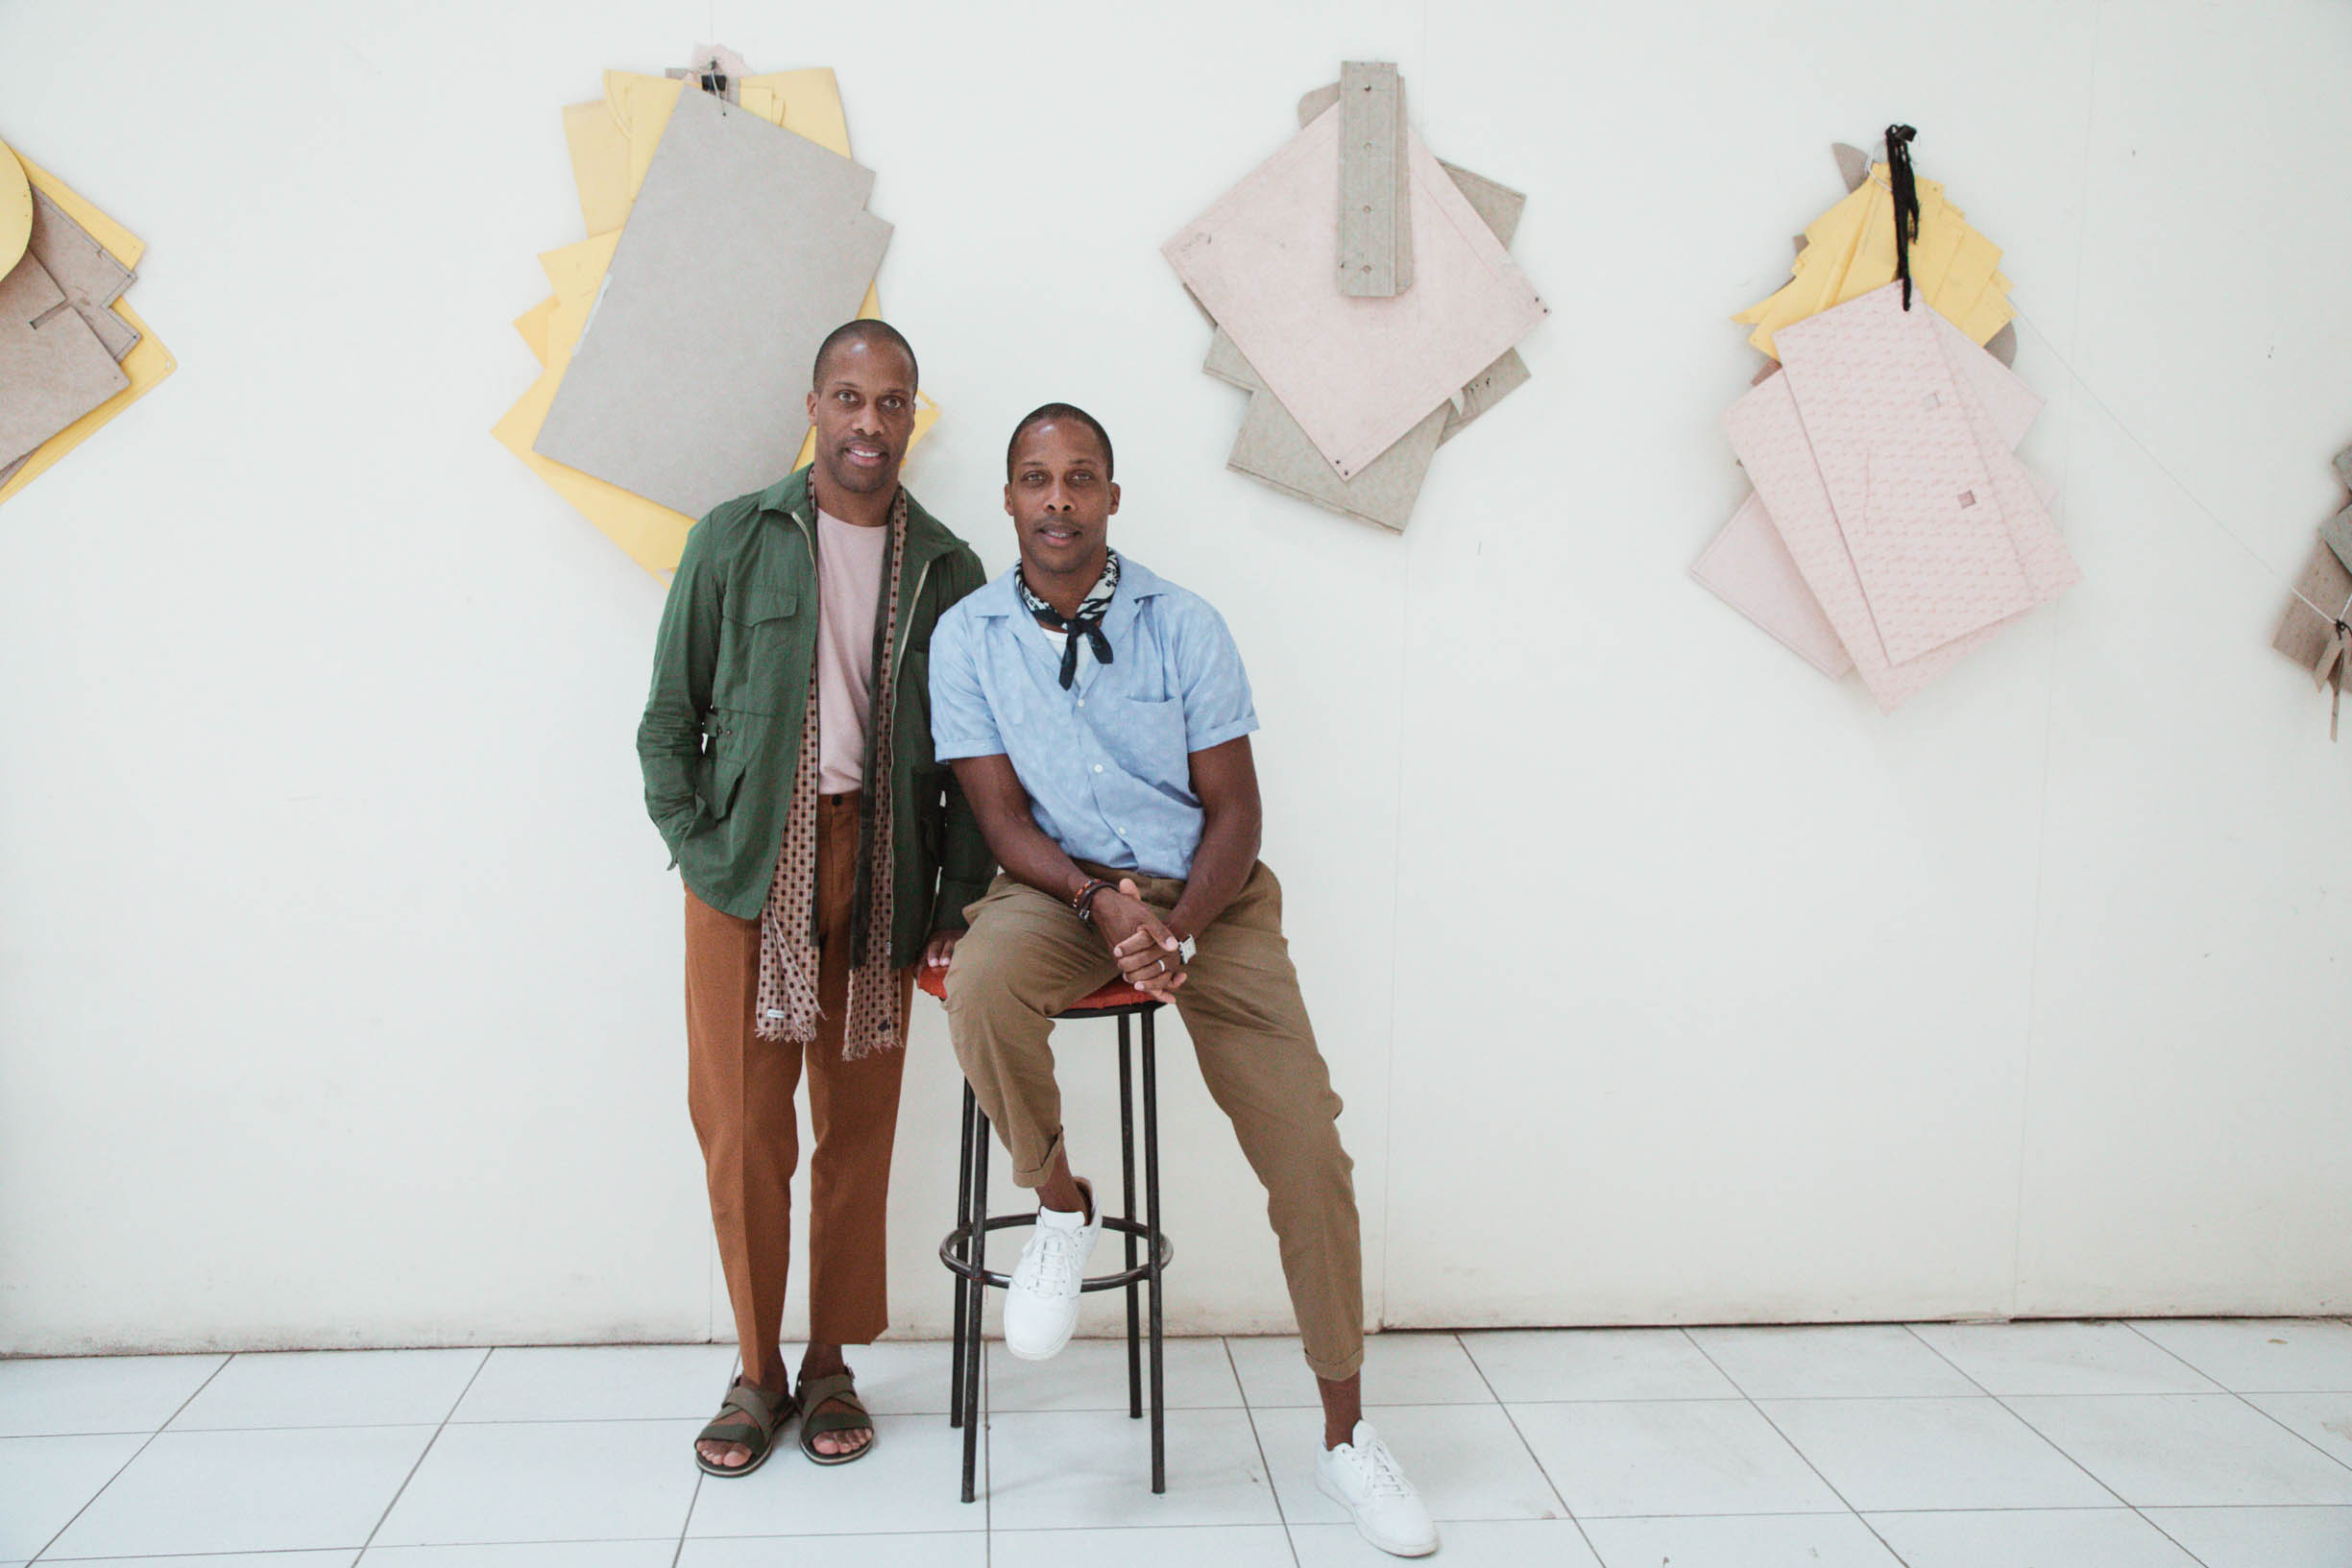 Goodee founders Byron and Dexter Peart testimonial for UPPL creative agency